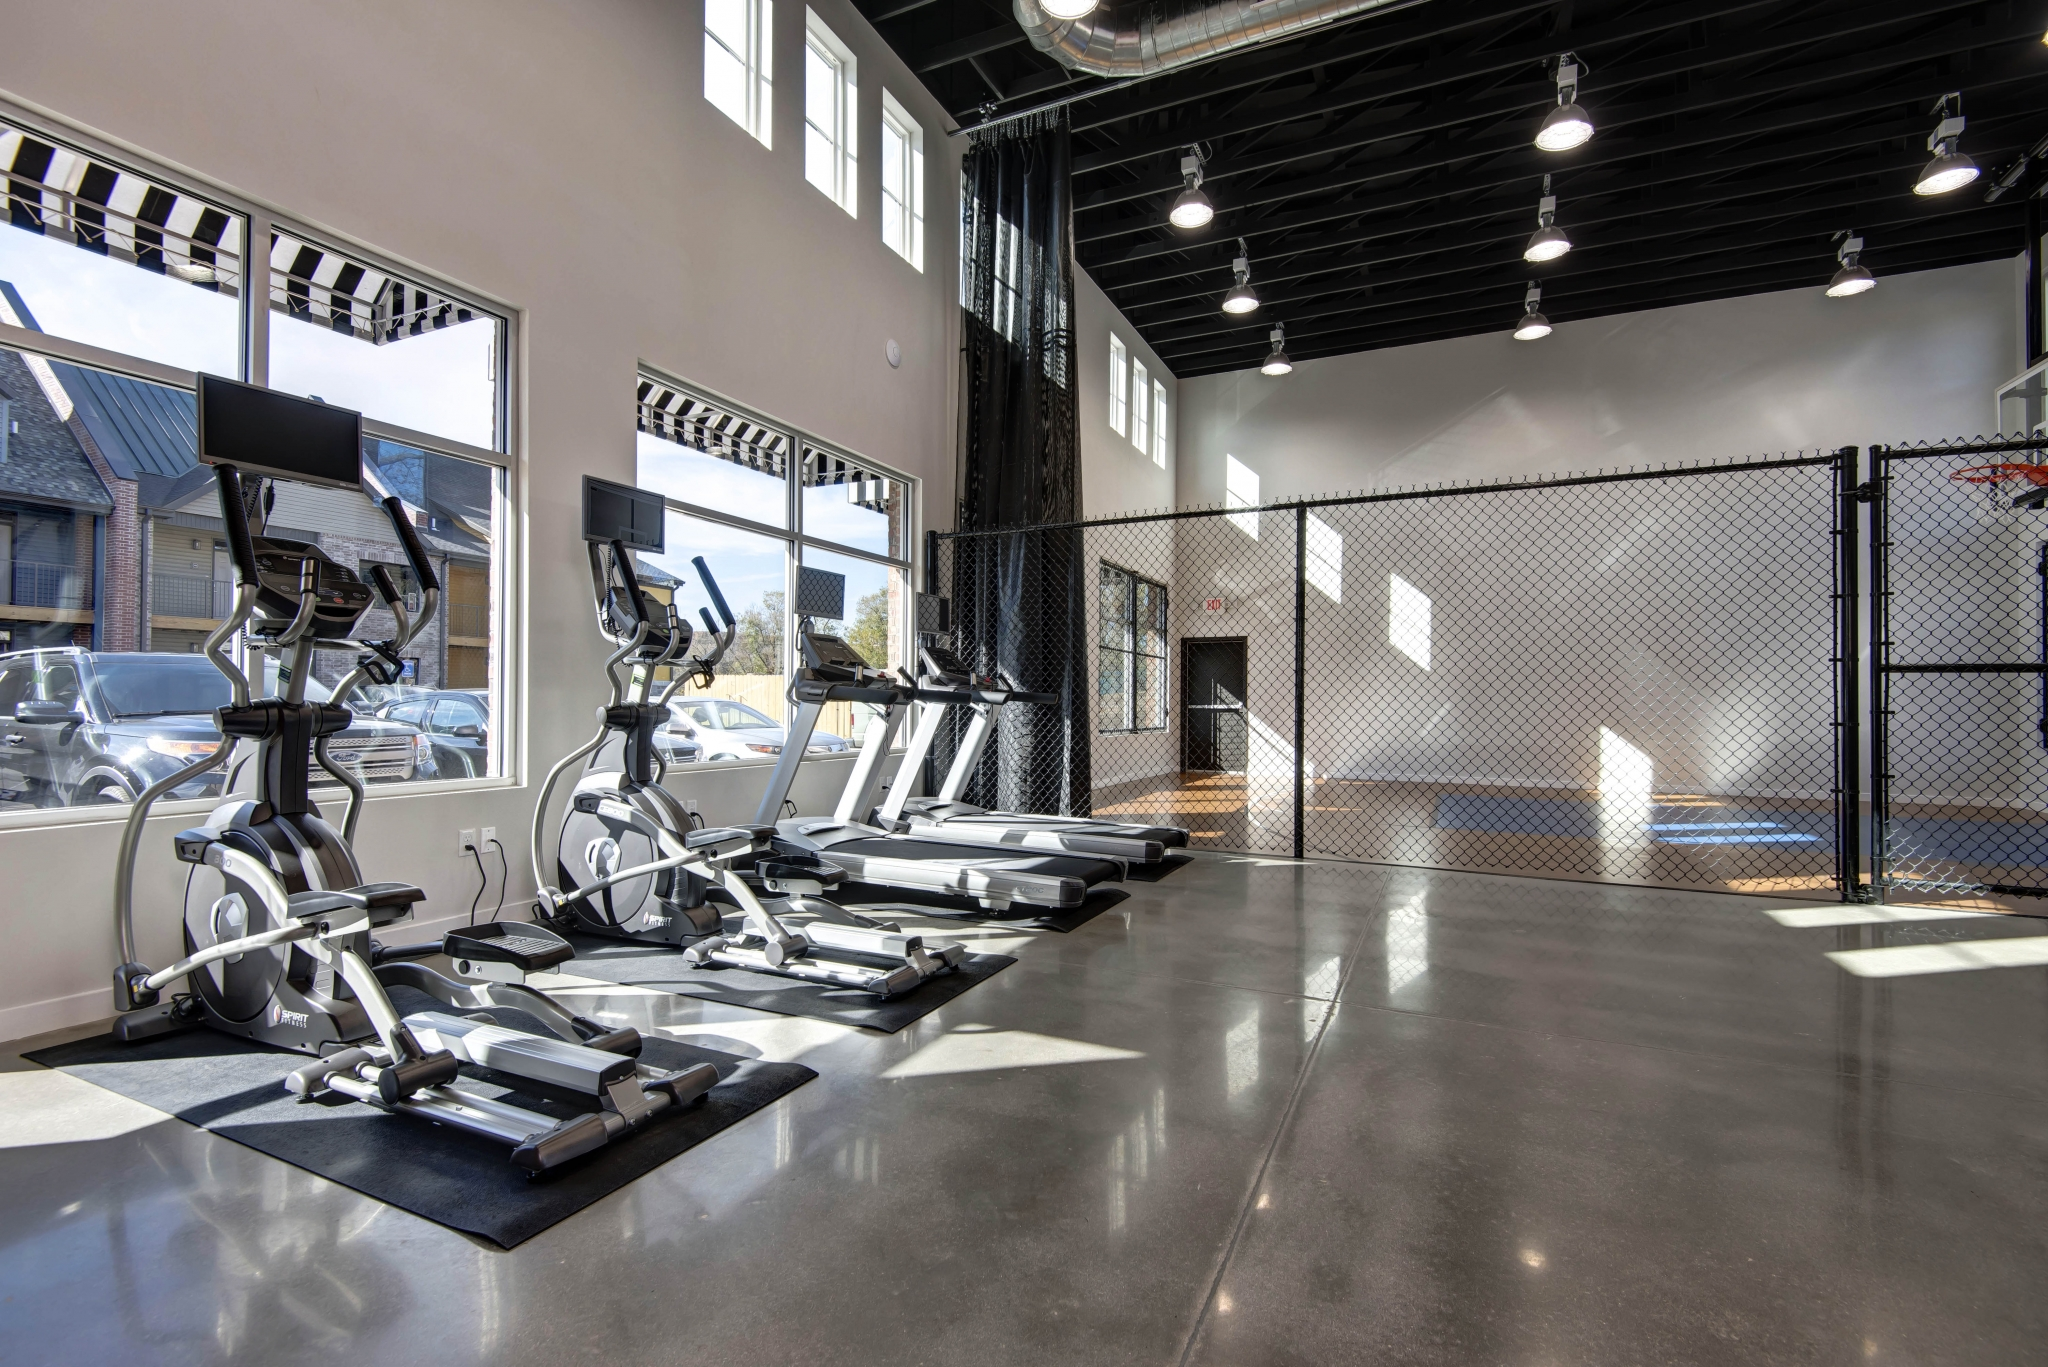 Township 28 Apartments amenity fitness center and indoor basketball court